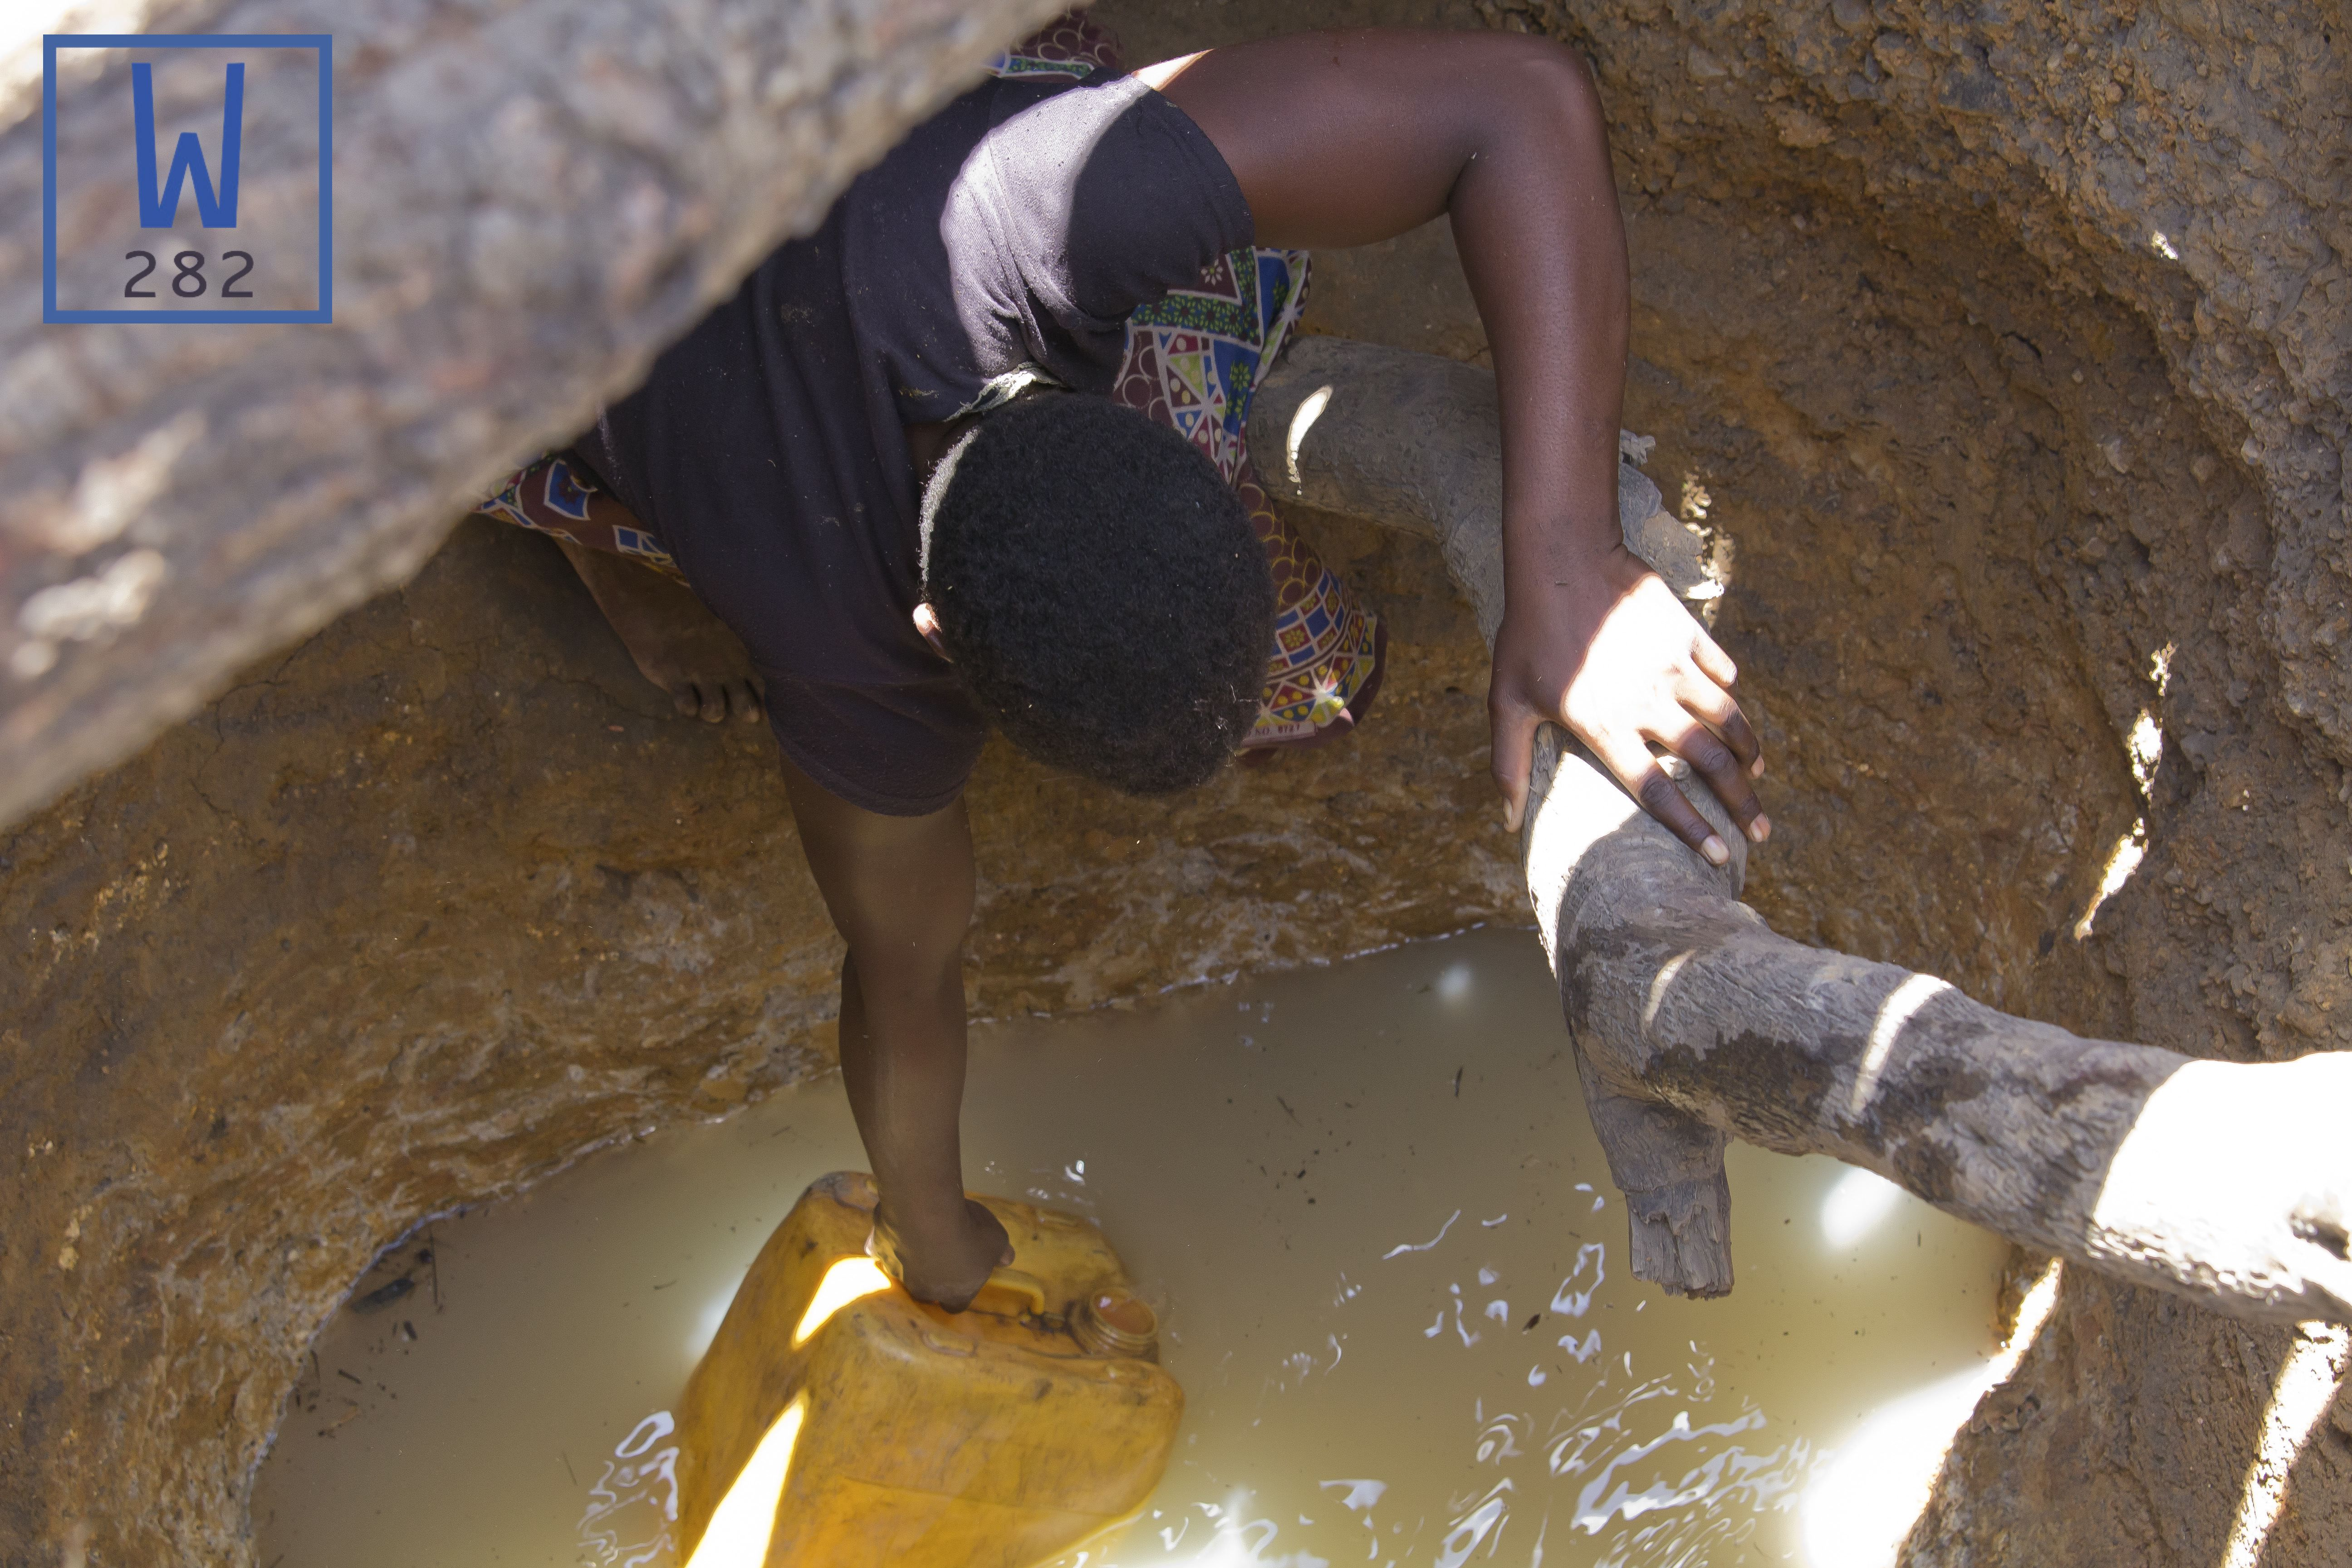 Over 345 million people in Africa alone are drinking water like this or worse. #youcanhelp #cleanwaterforall #W282